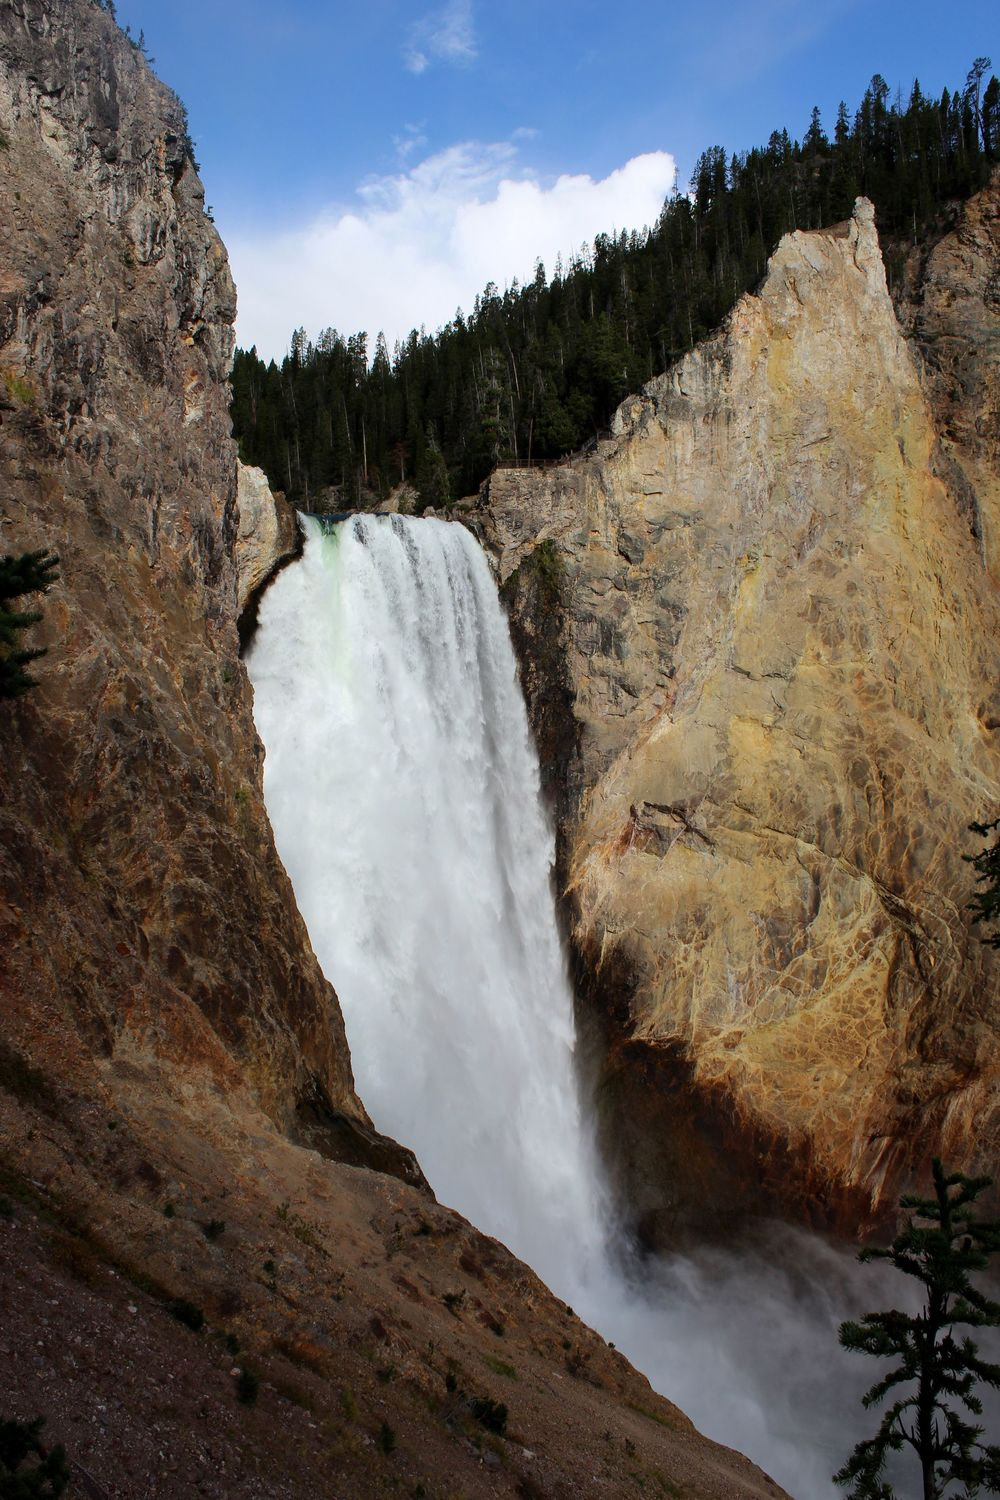 Les chutes du Canyon du Yellowstone, Yellowstone National Park, WY, USA